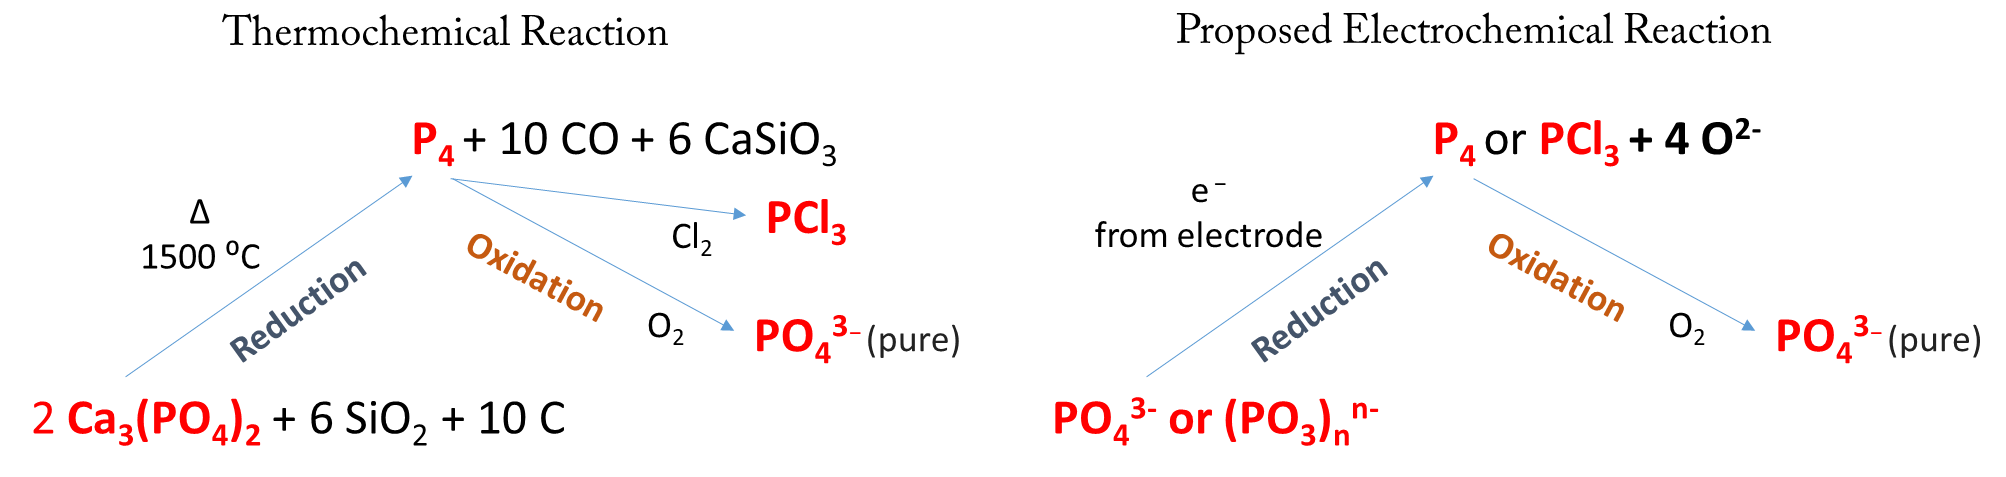 "Comparison of existing thermo-chemical method of phosphate processing (left) with the proposed electro-chemical ""half-reaction"" method (right)."